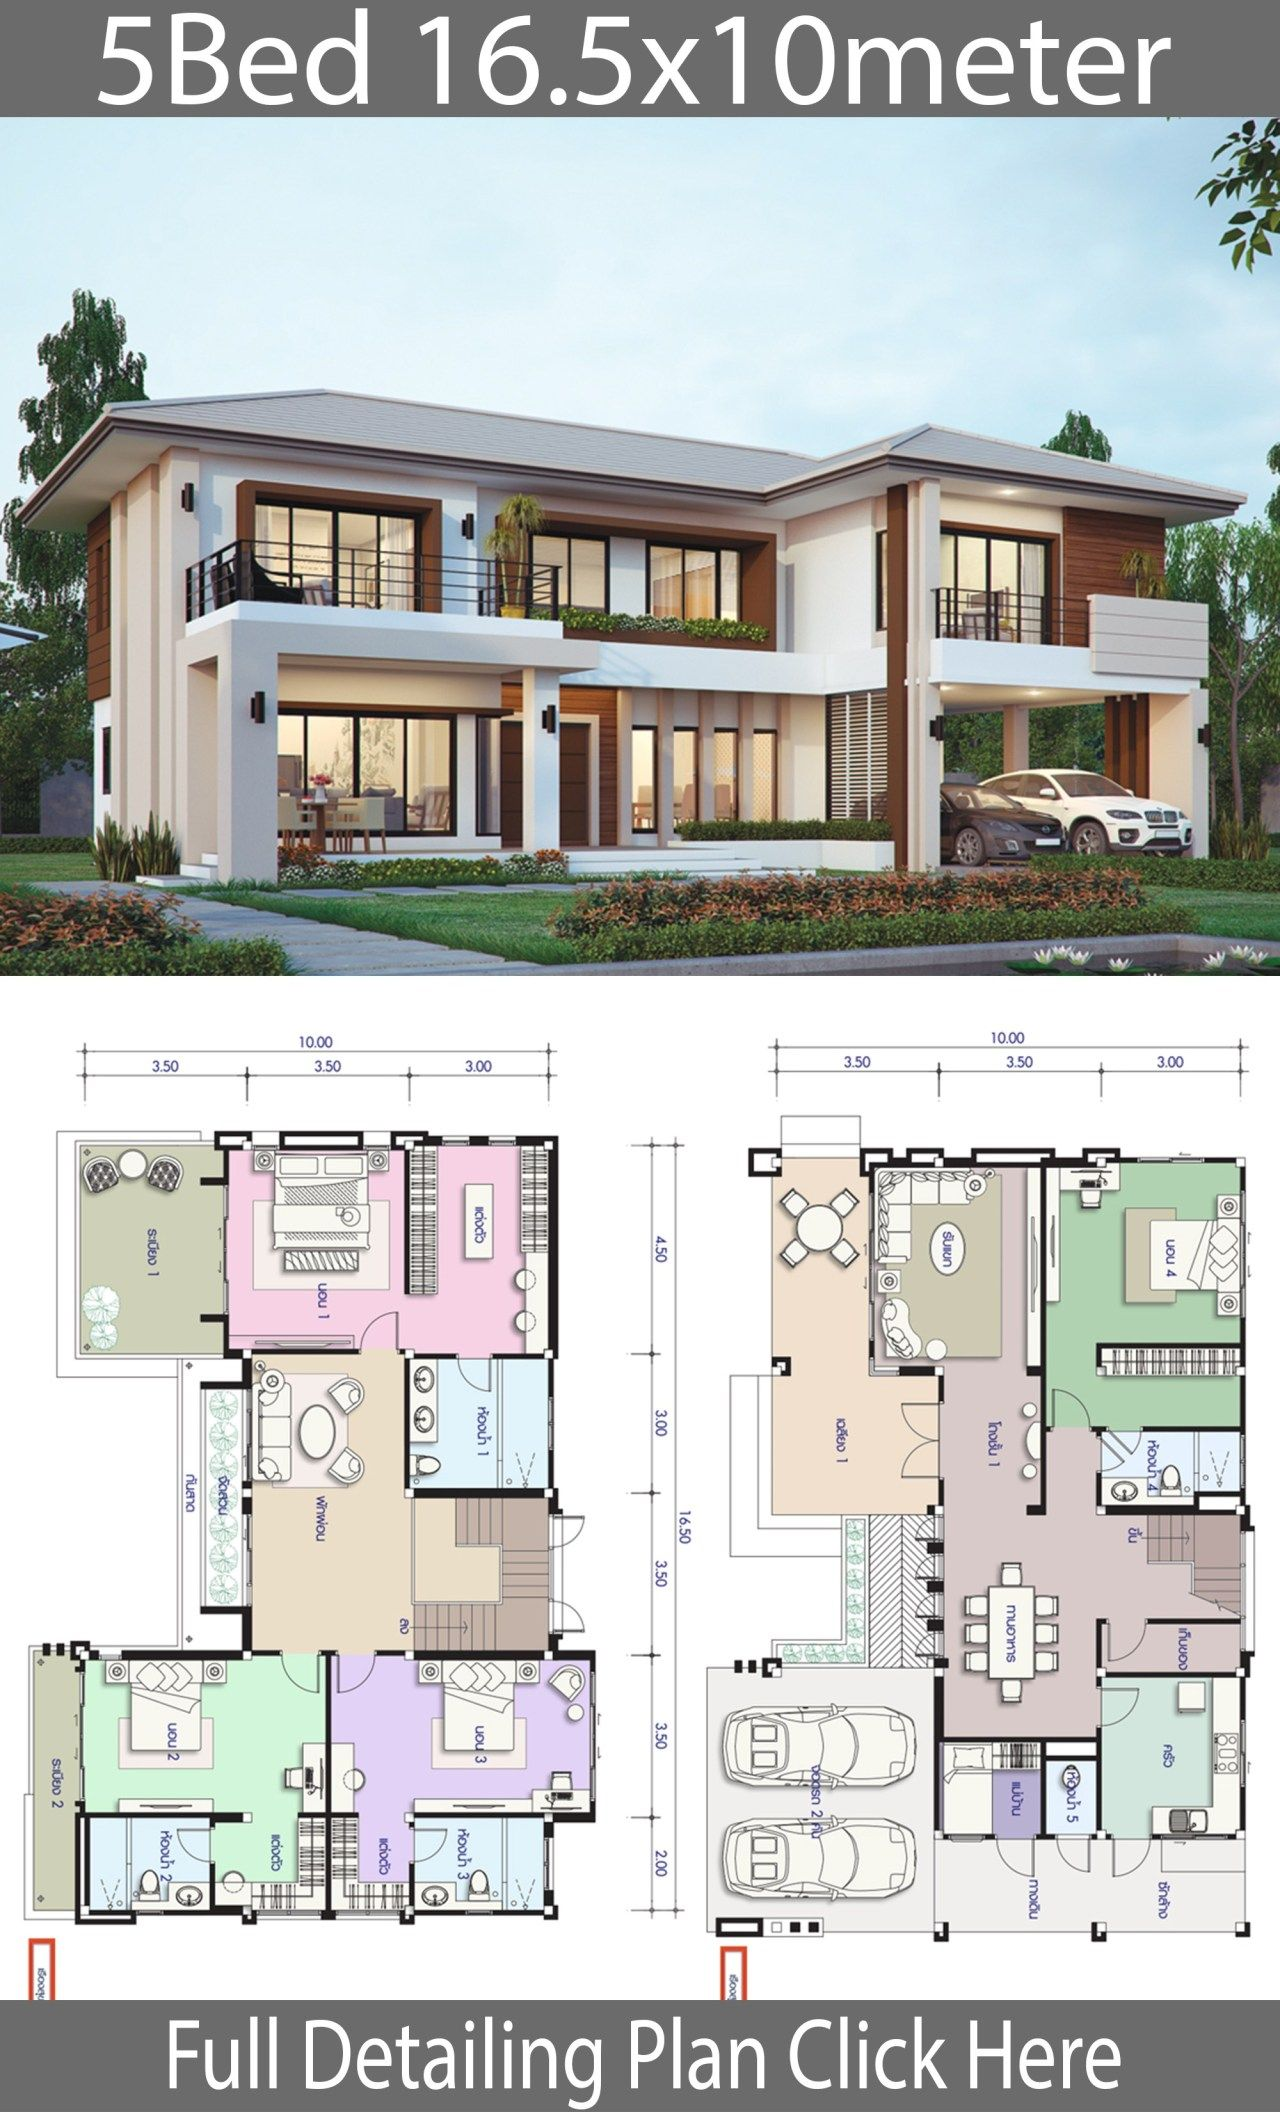 House Design Plan 16 5x10m With 5 Bedrooms Architectural House Plans Sims House Plans House Projects Architecture